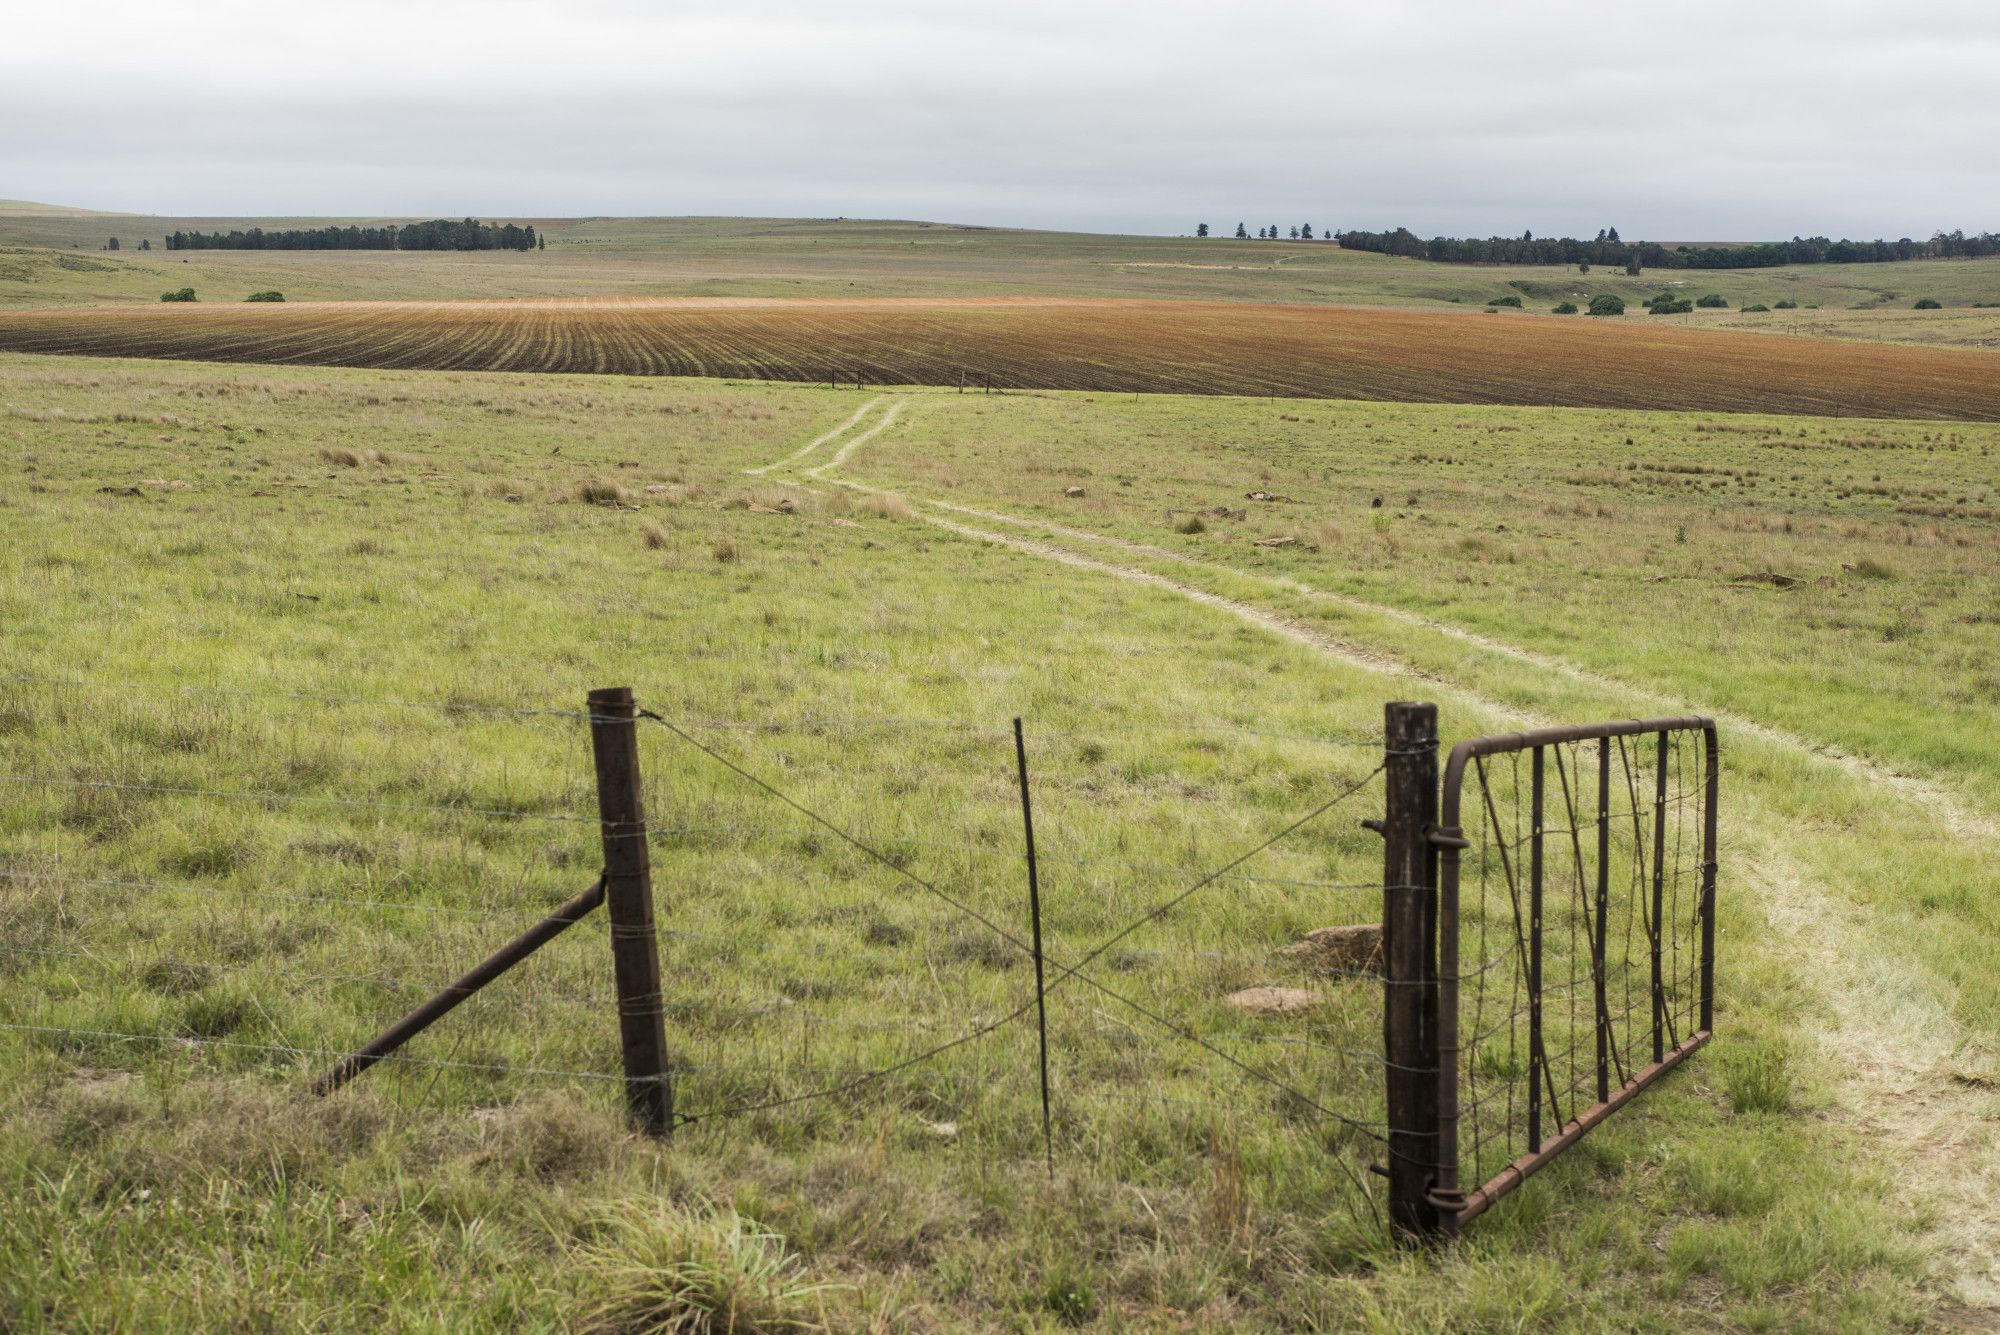 Land Panel Report Highlights Rifts That Divide South Africa